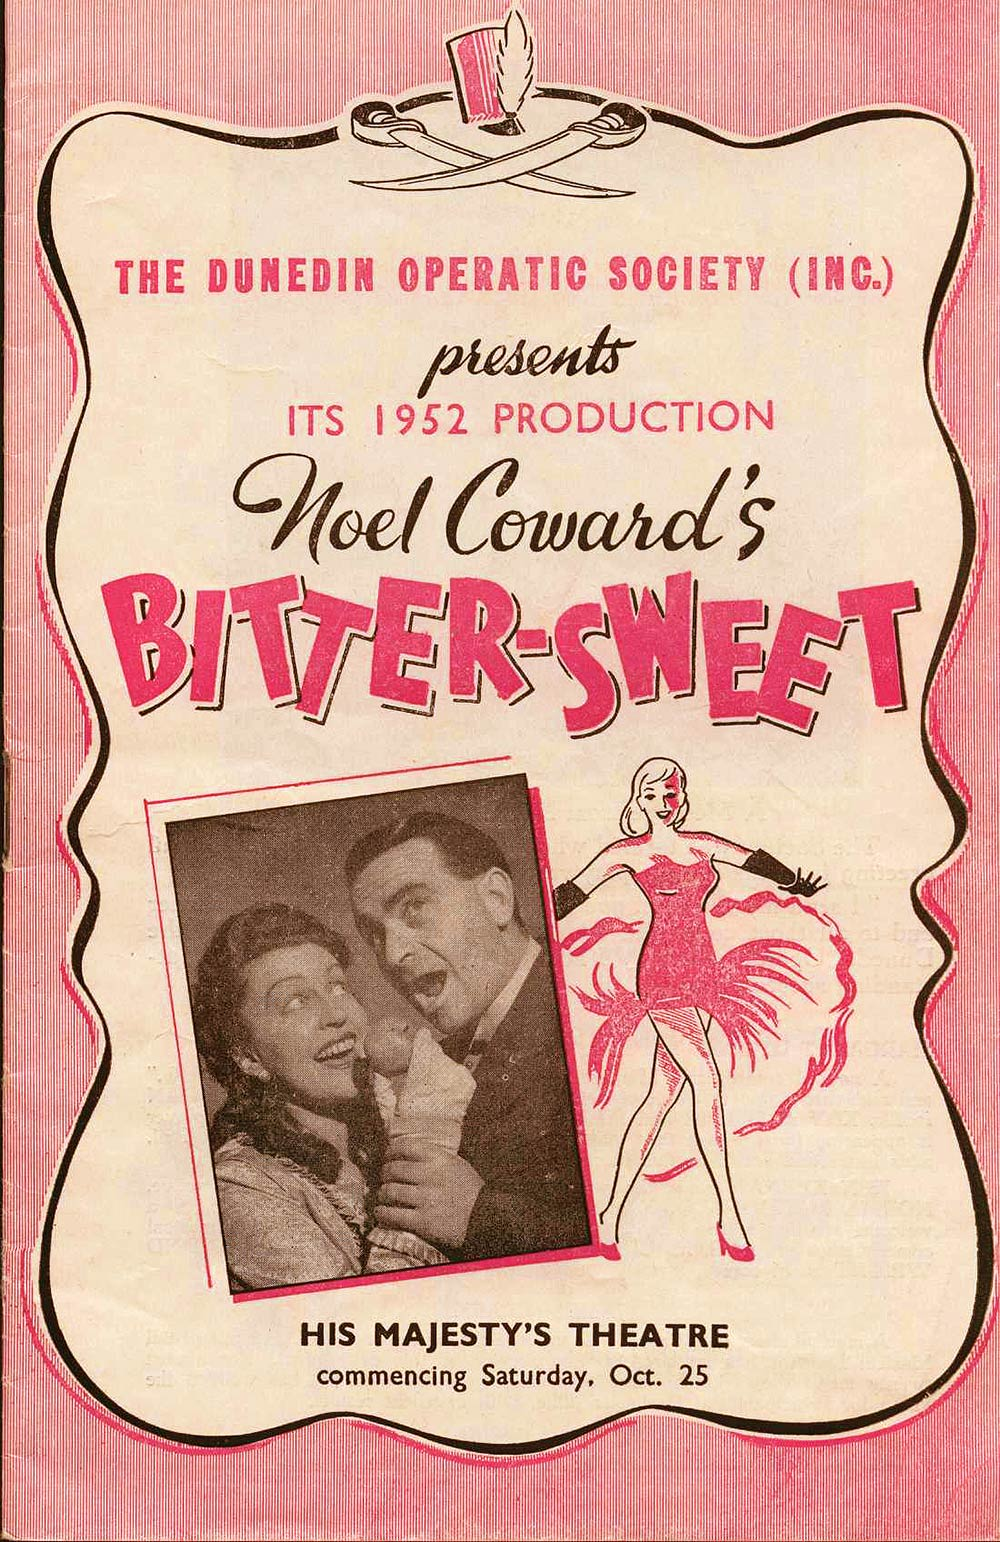 <em>Bitter-sweet</em>. Book, lyrics and music by Noel Coward. (Dunedin Operatic & Dramatic Society). His Majesty's Theatre, Dunedin, Oct. 25, 1952.